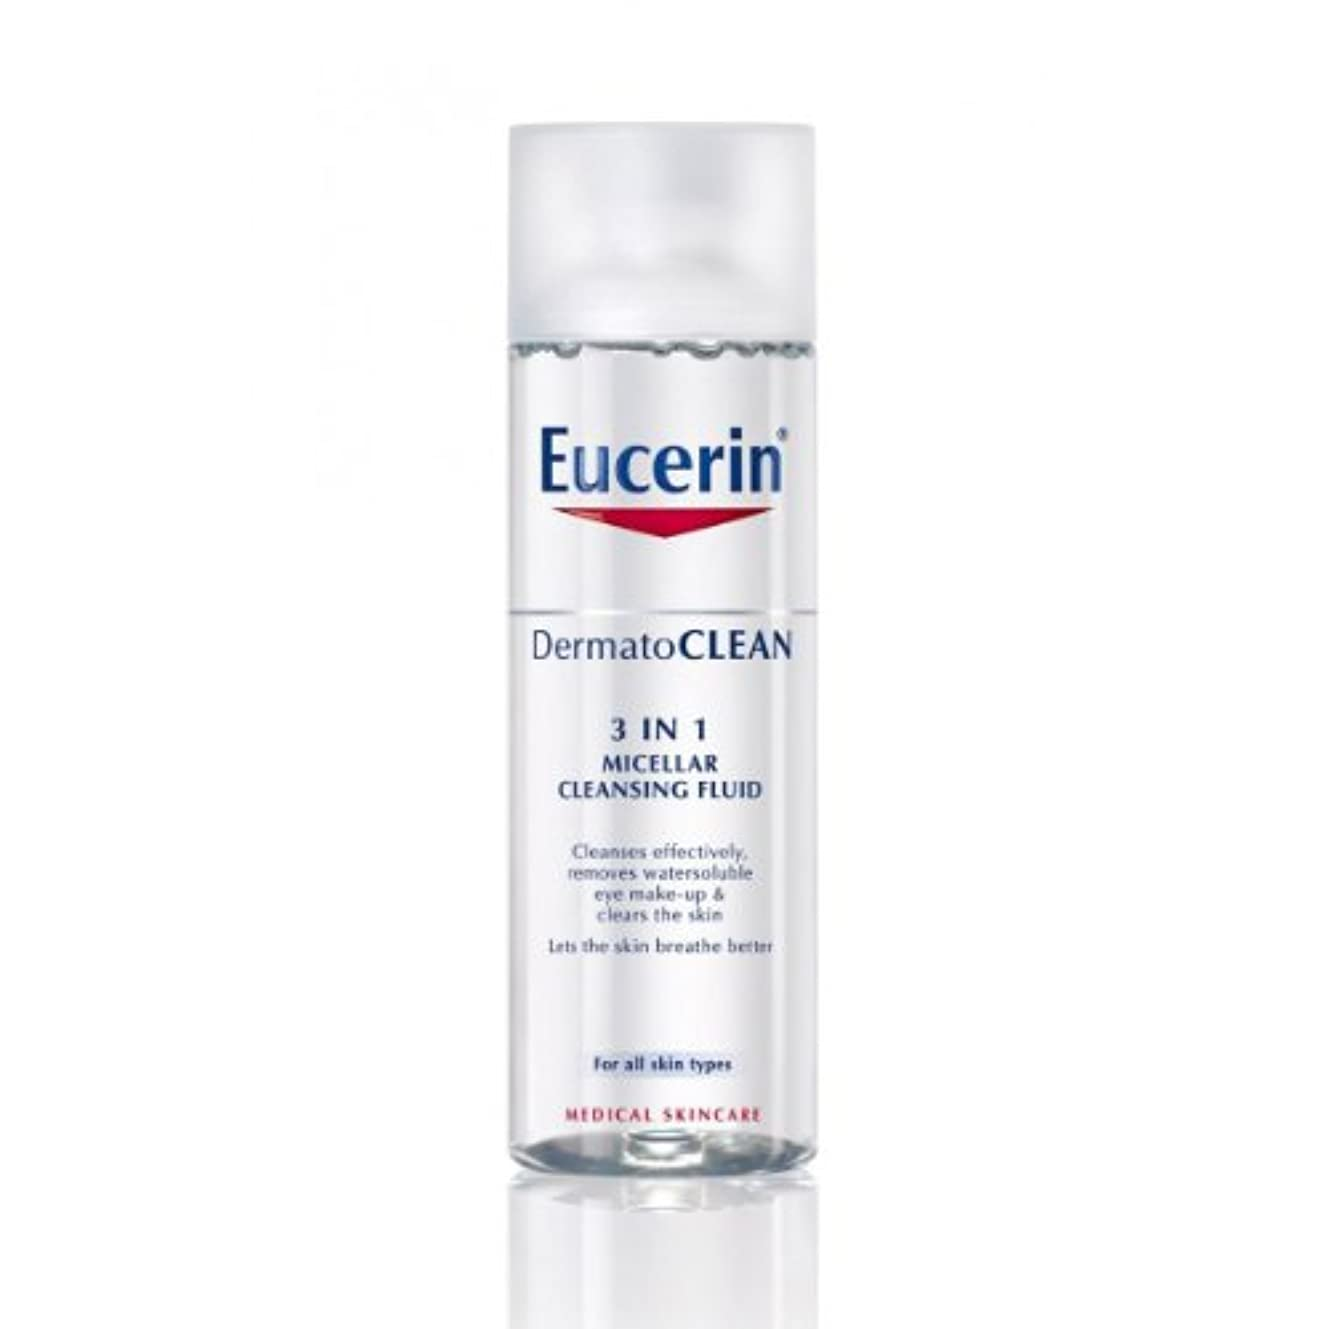 管理征服ゆるいEucerin Dermatoclean 3in1 Micellar Cleansing Fluid 200ml [並行輸入品]